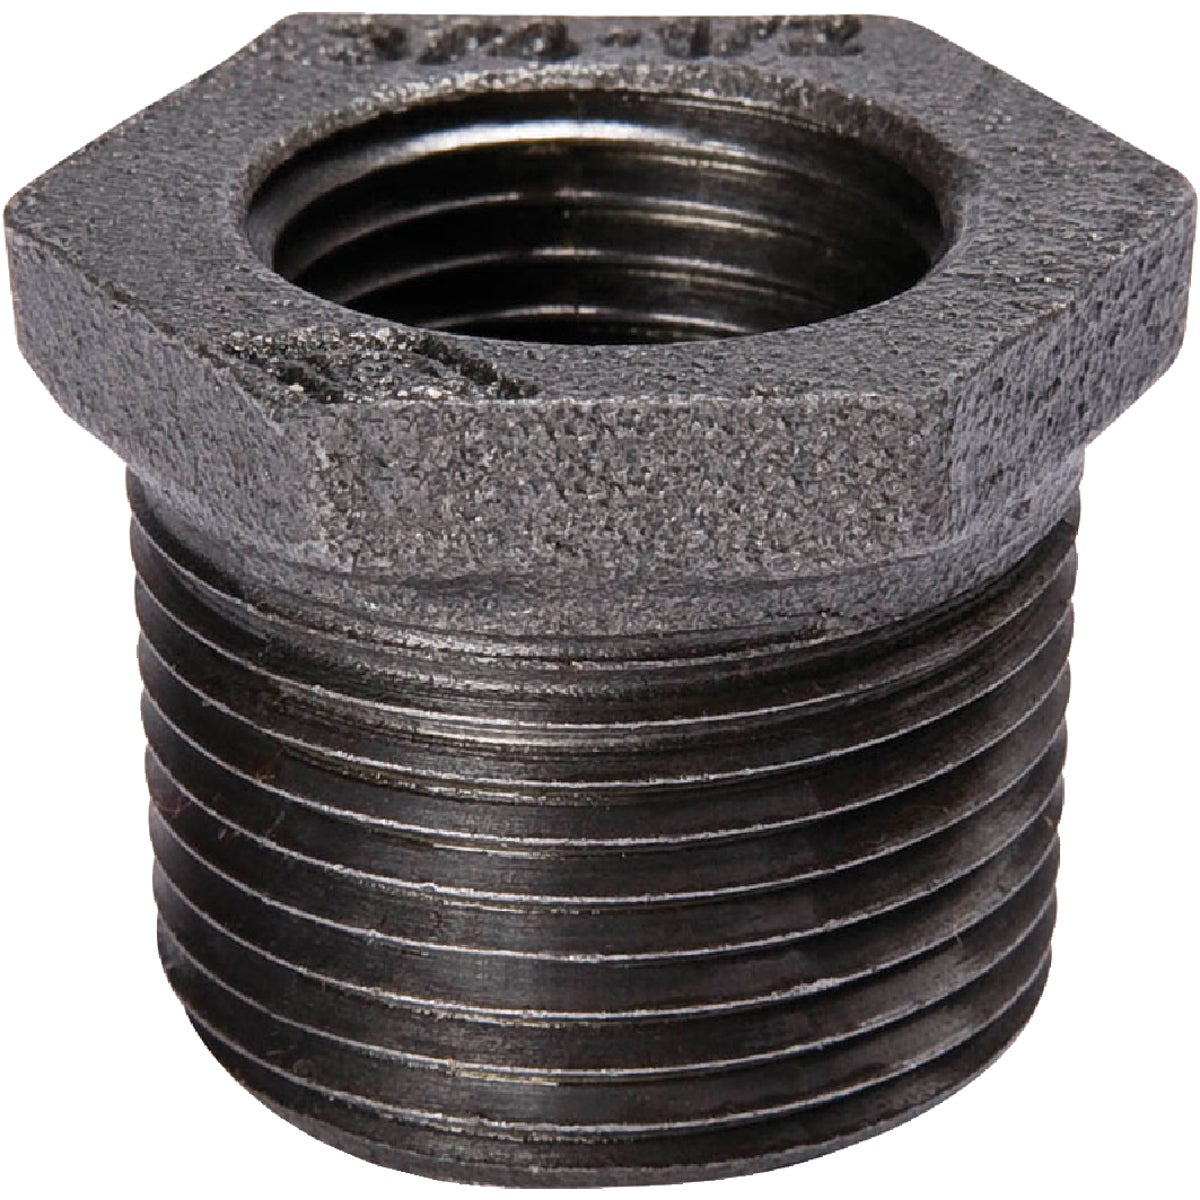 1/4X1/8 BLACK BUSHING